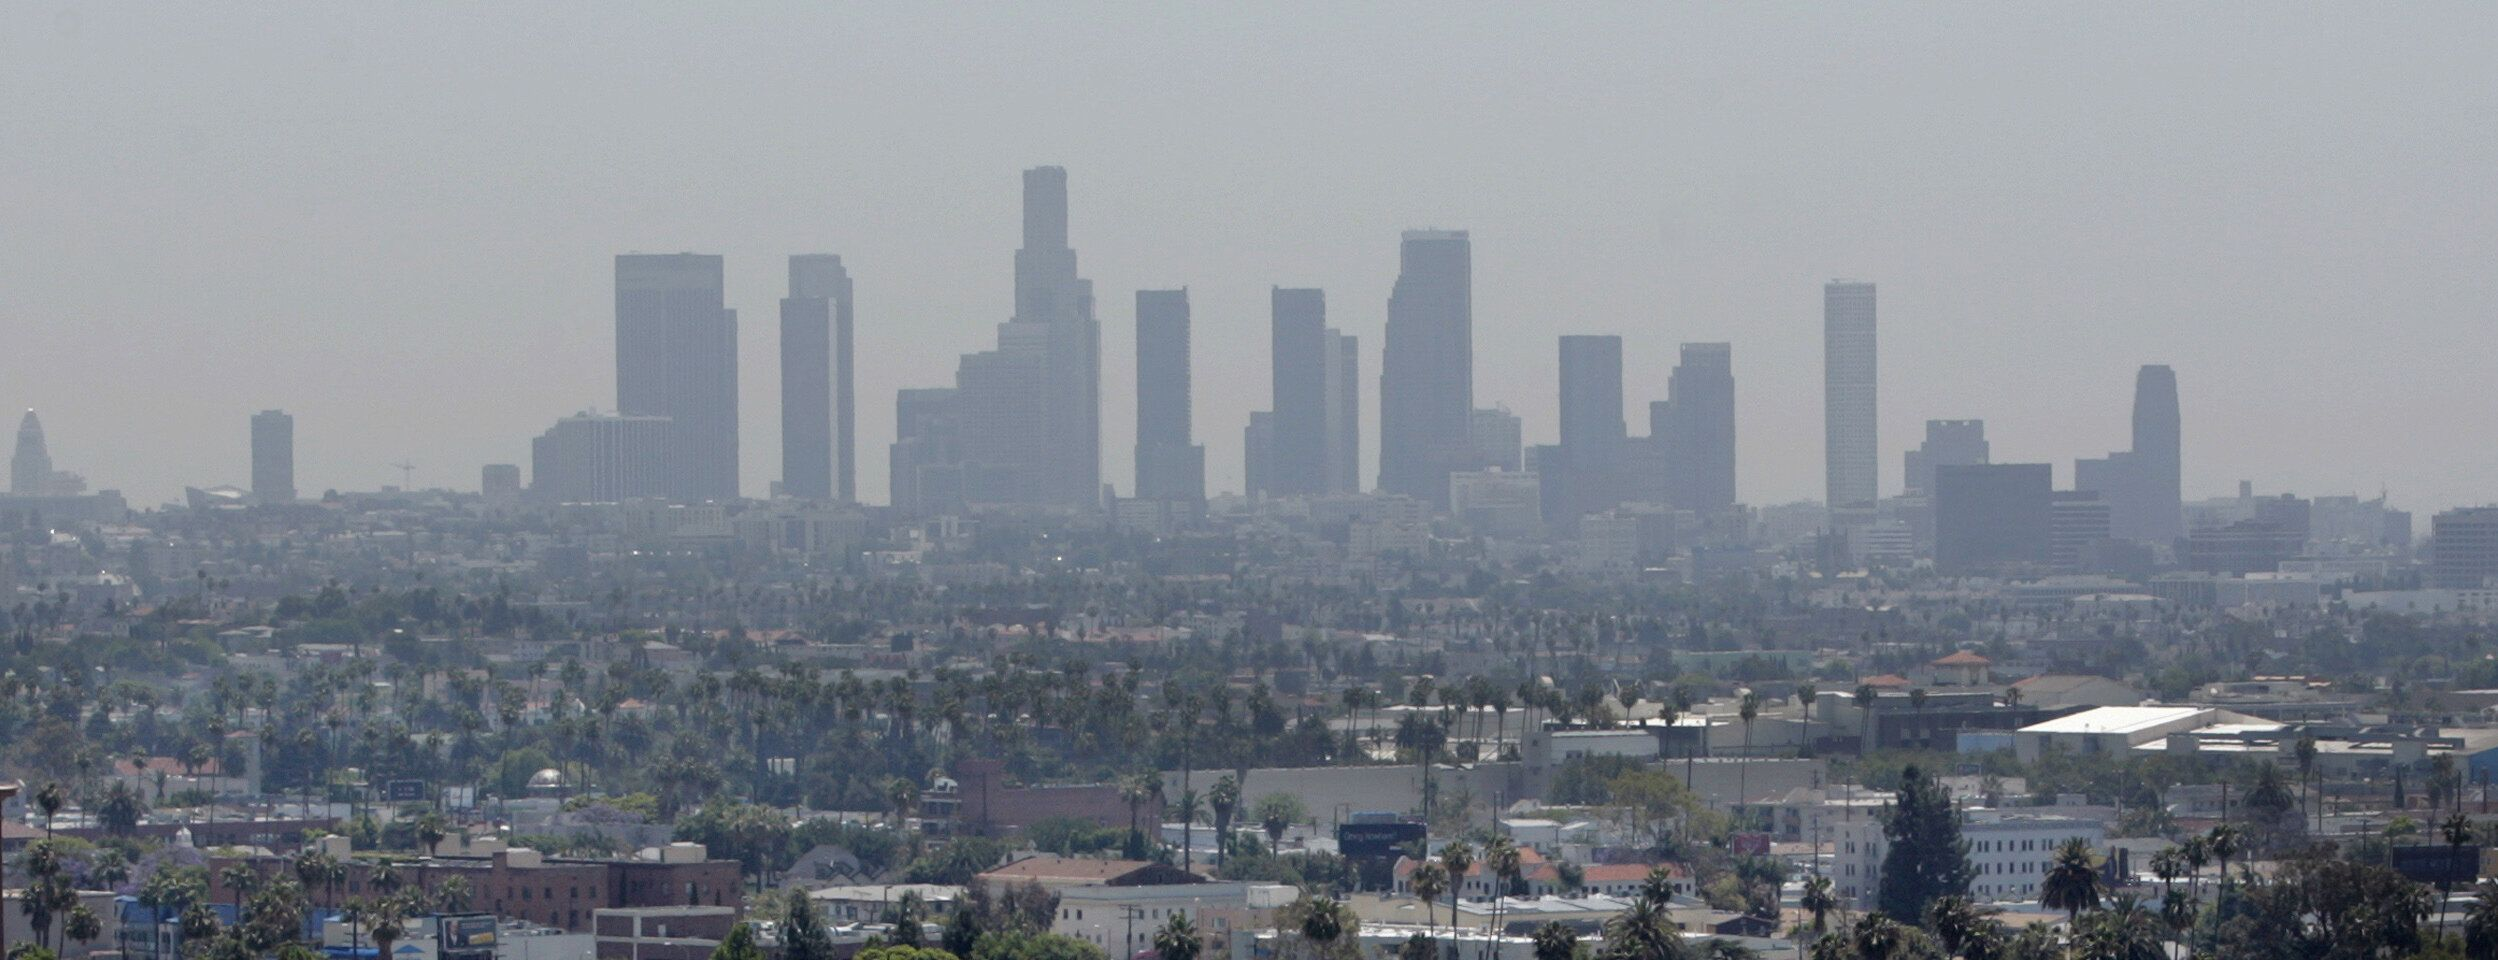 Smog clouds the Los Angeles skyline in this photo from 2006.